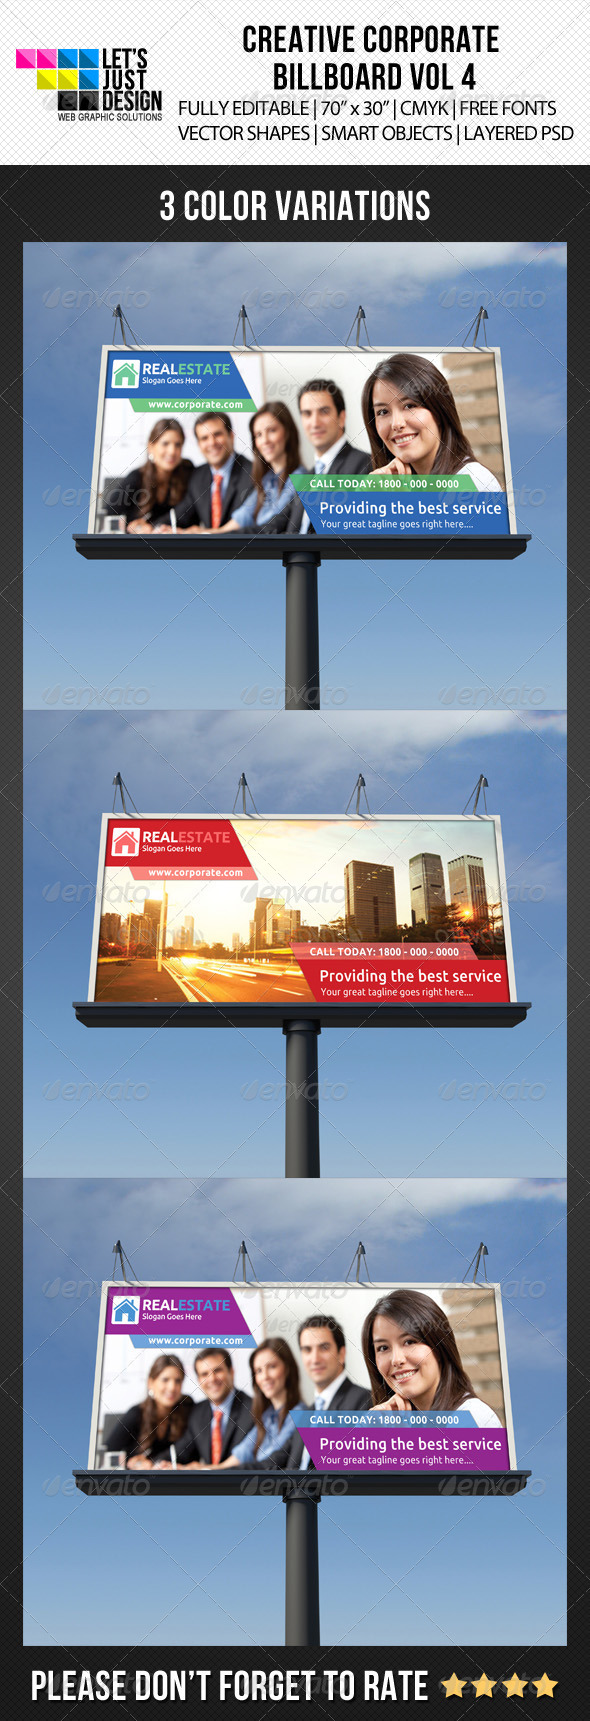 GraphicRiver Creative Corporate Billboard Vol 4 5449919